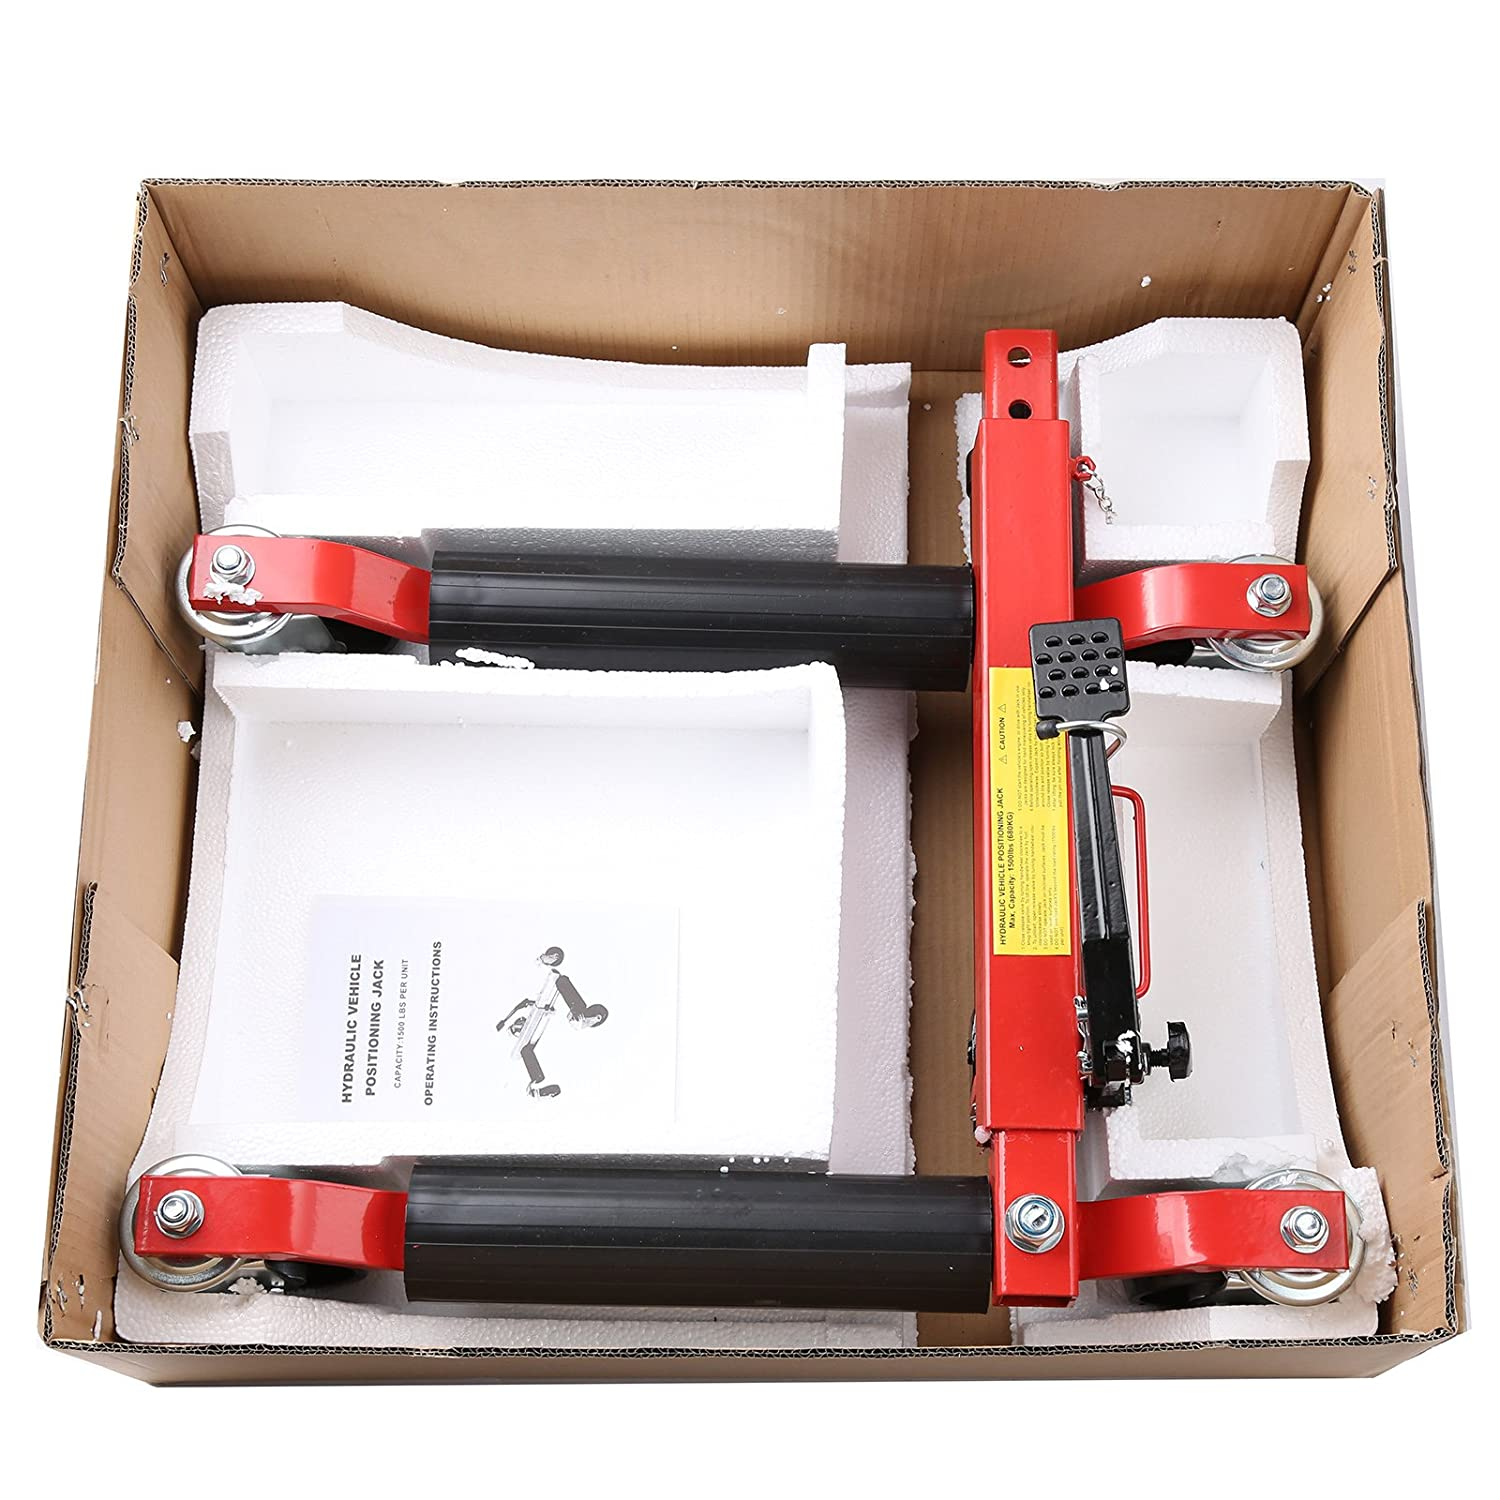 WIN.MAX Lots of 2 1500lb Hydraulic Vehicle Positioning Jack Wheel Dolly Lift Mover Vehicle Car SUV